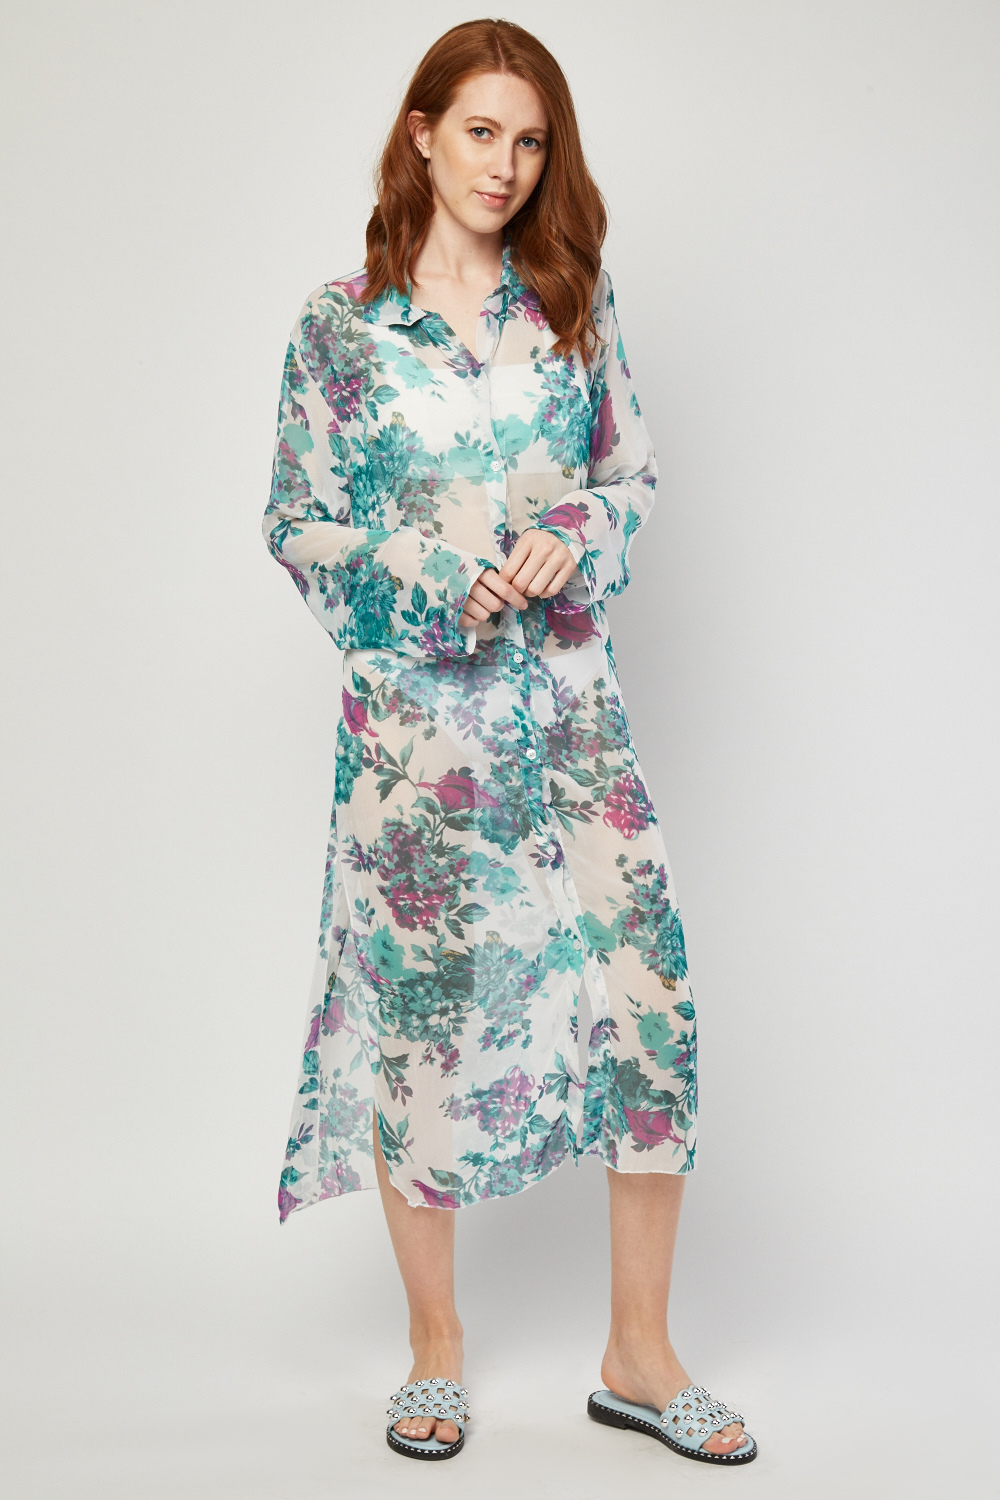 383701c33 Sheer Floral Long Line Beach Cover Up - Green/Multi or Plum/Multi ...